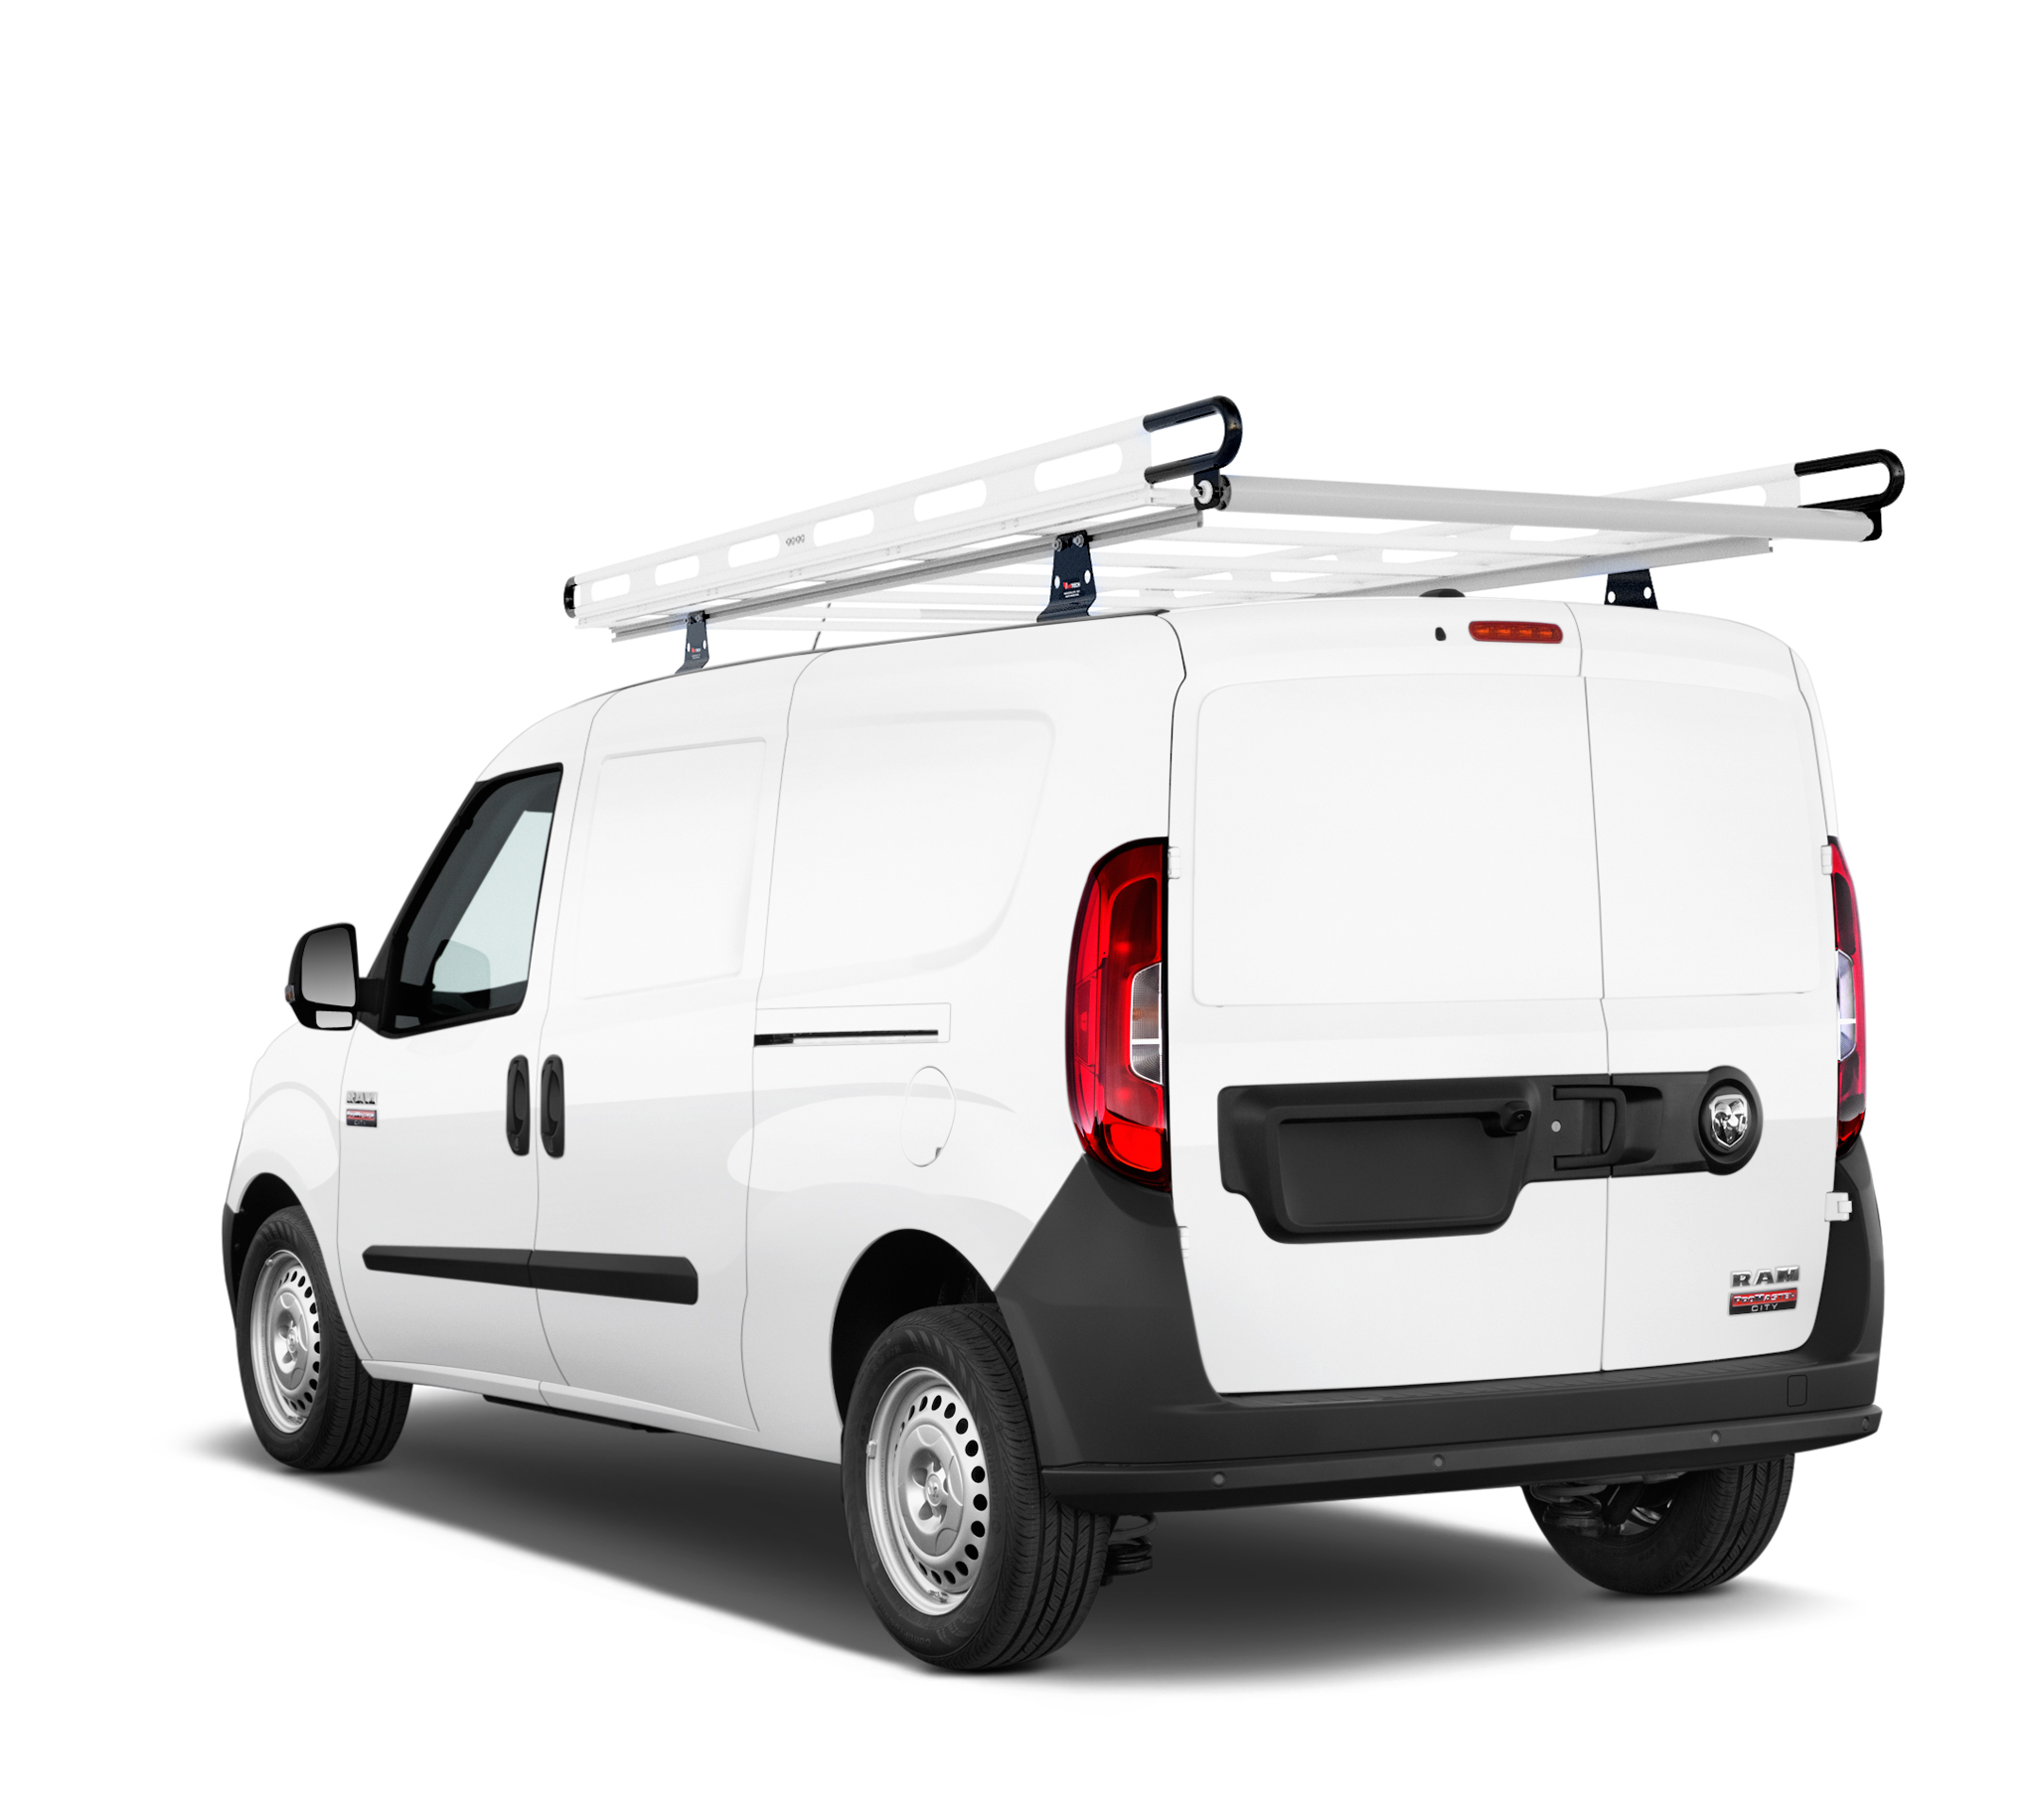 h2 ladder roof rack for ram promaster city 2014 on